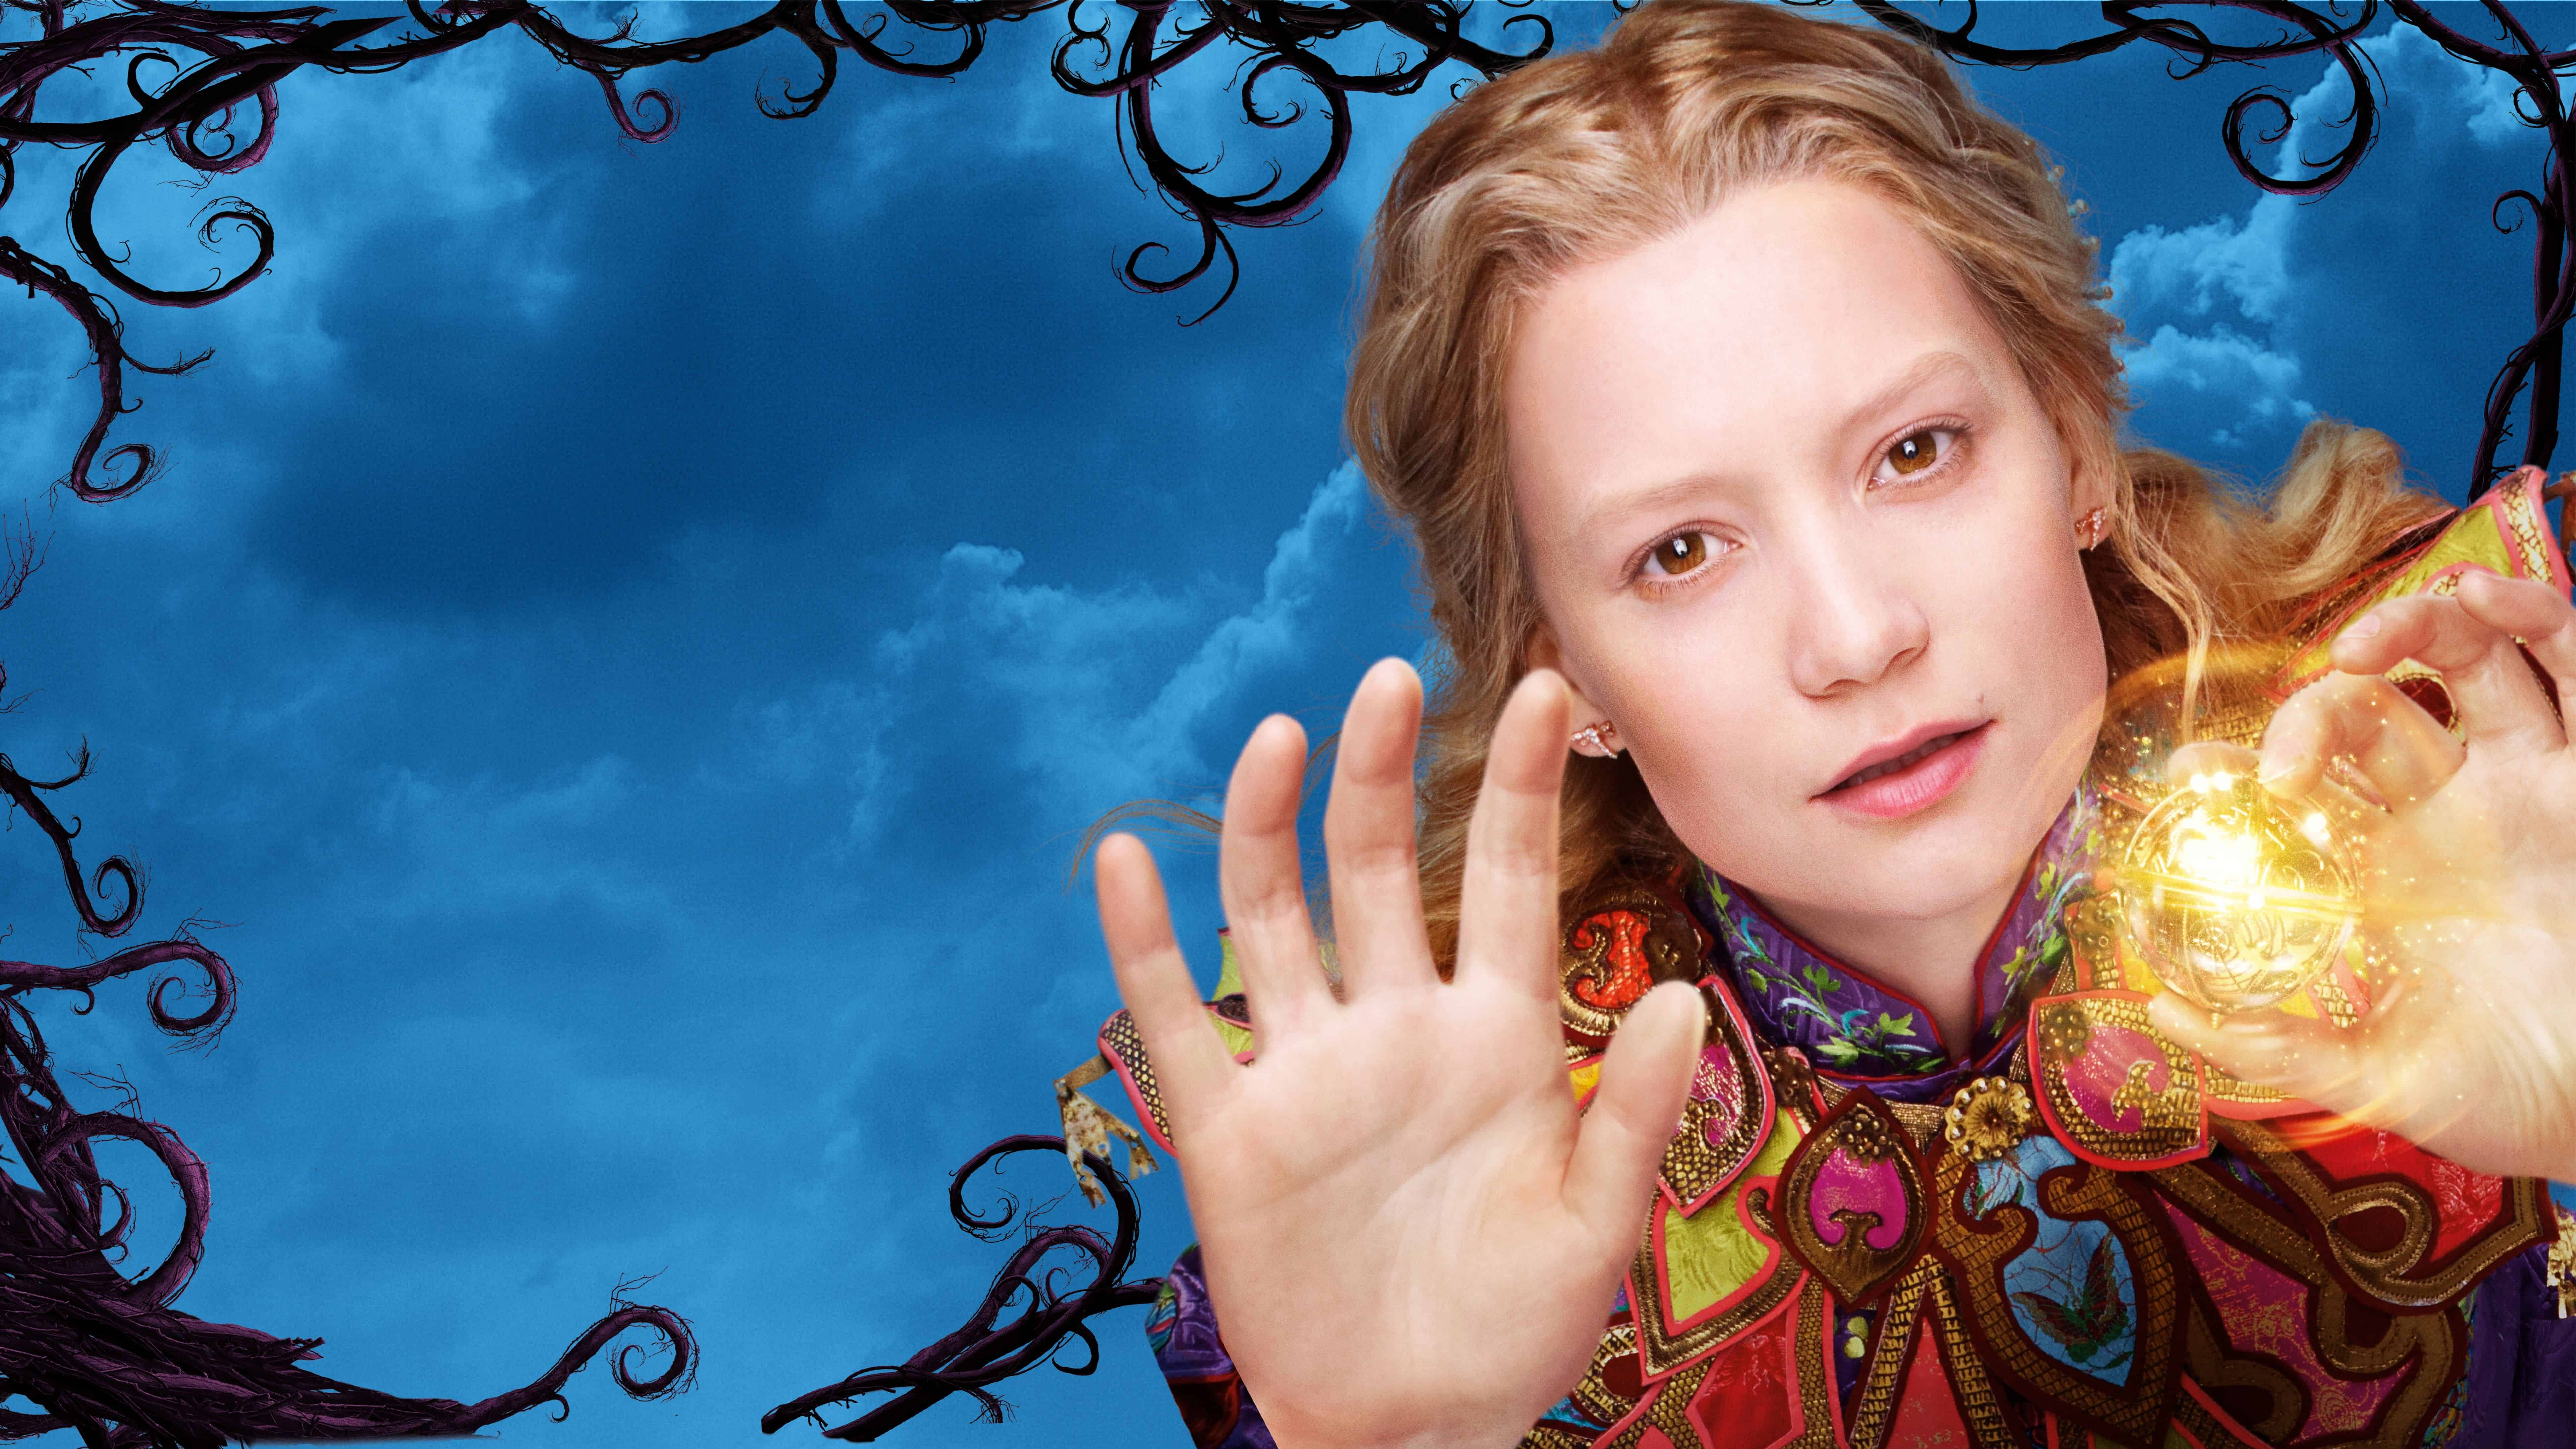 alice from alice through the looking glass uhd 8k wallpaper